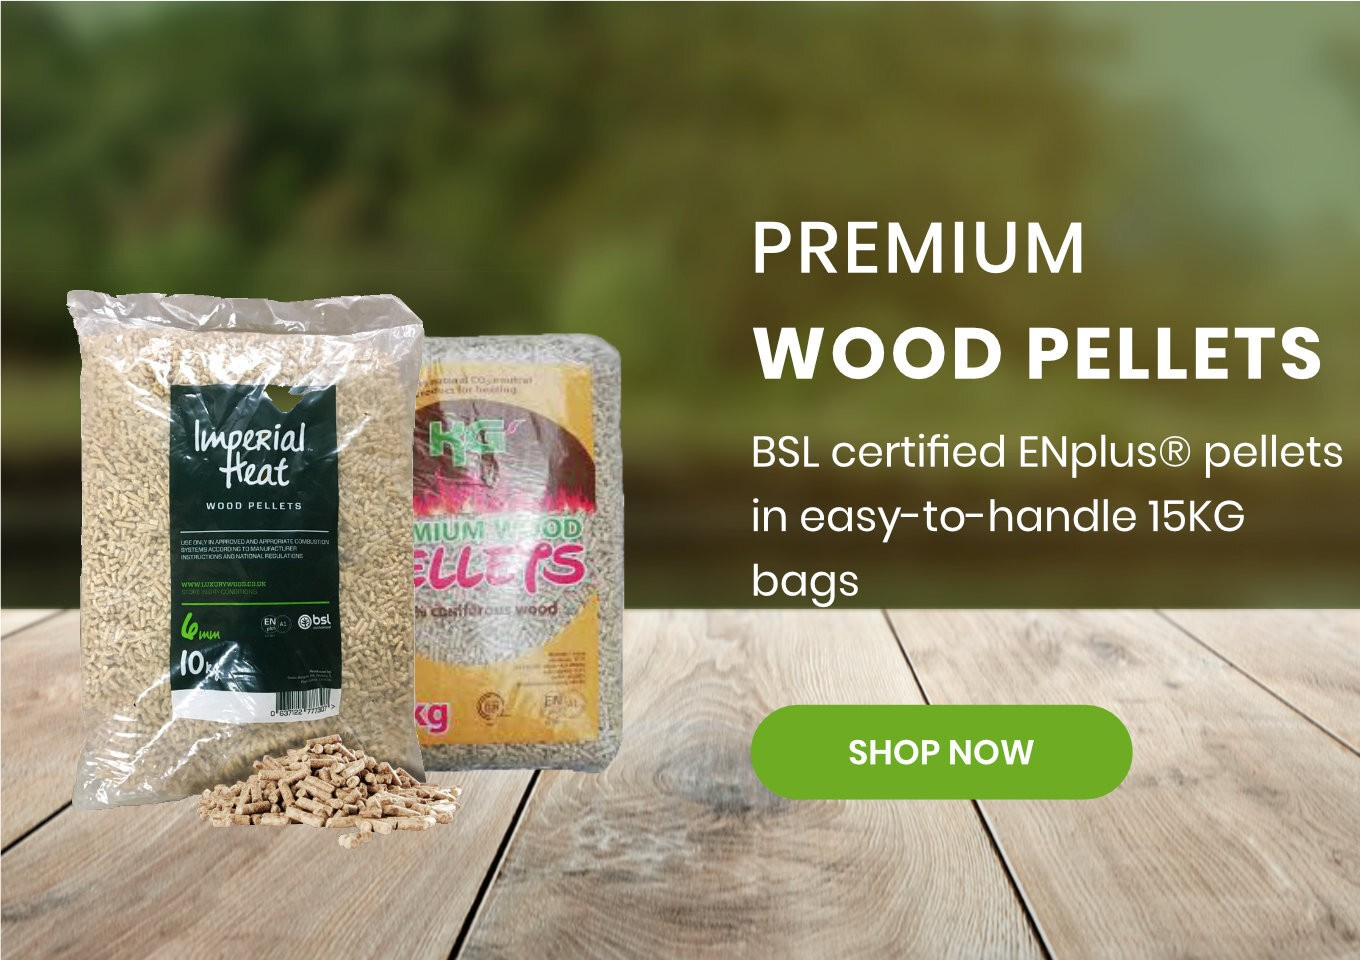 Wood Pellets On Sale - Luxury Wood Company